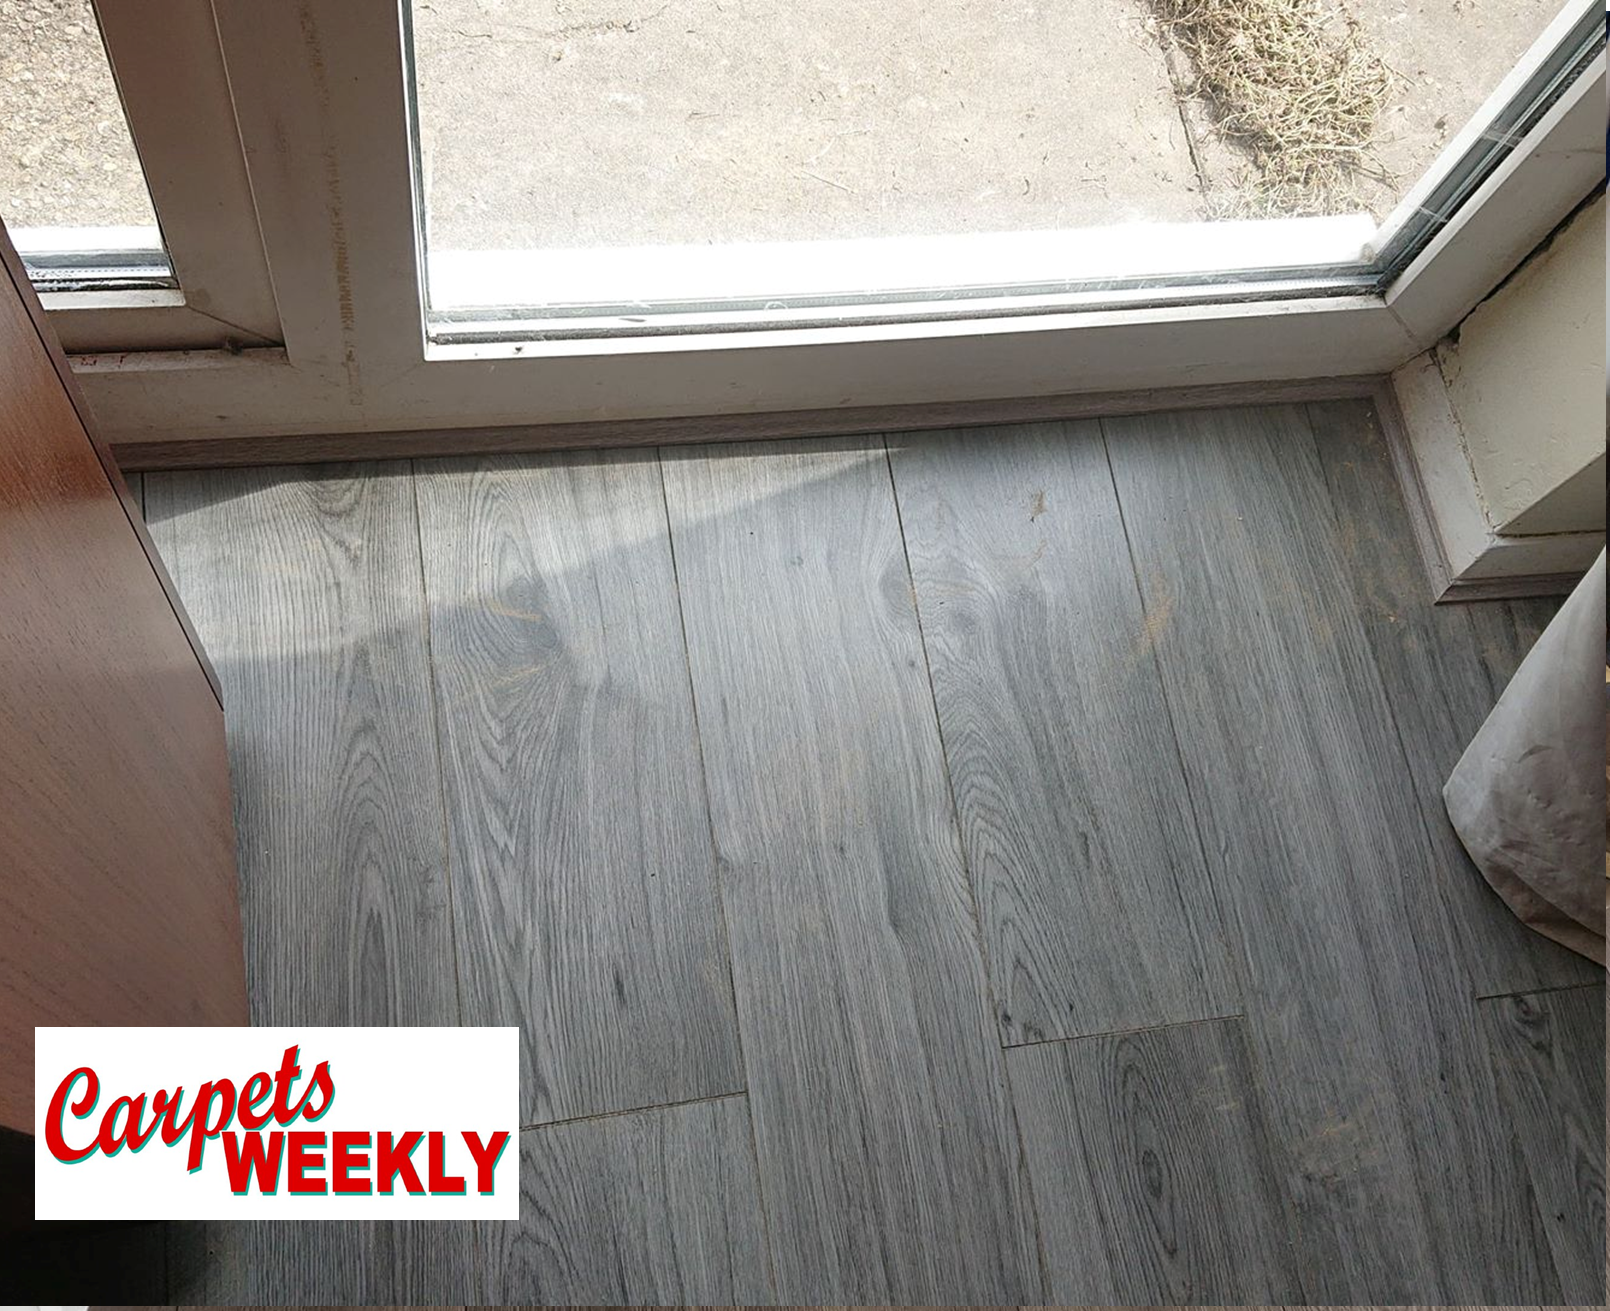 Carpets WeeklyOak Grey Laminate June 2019 2